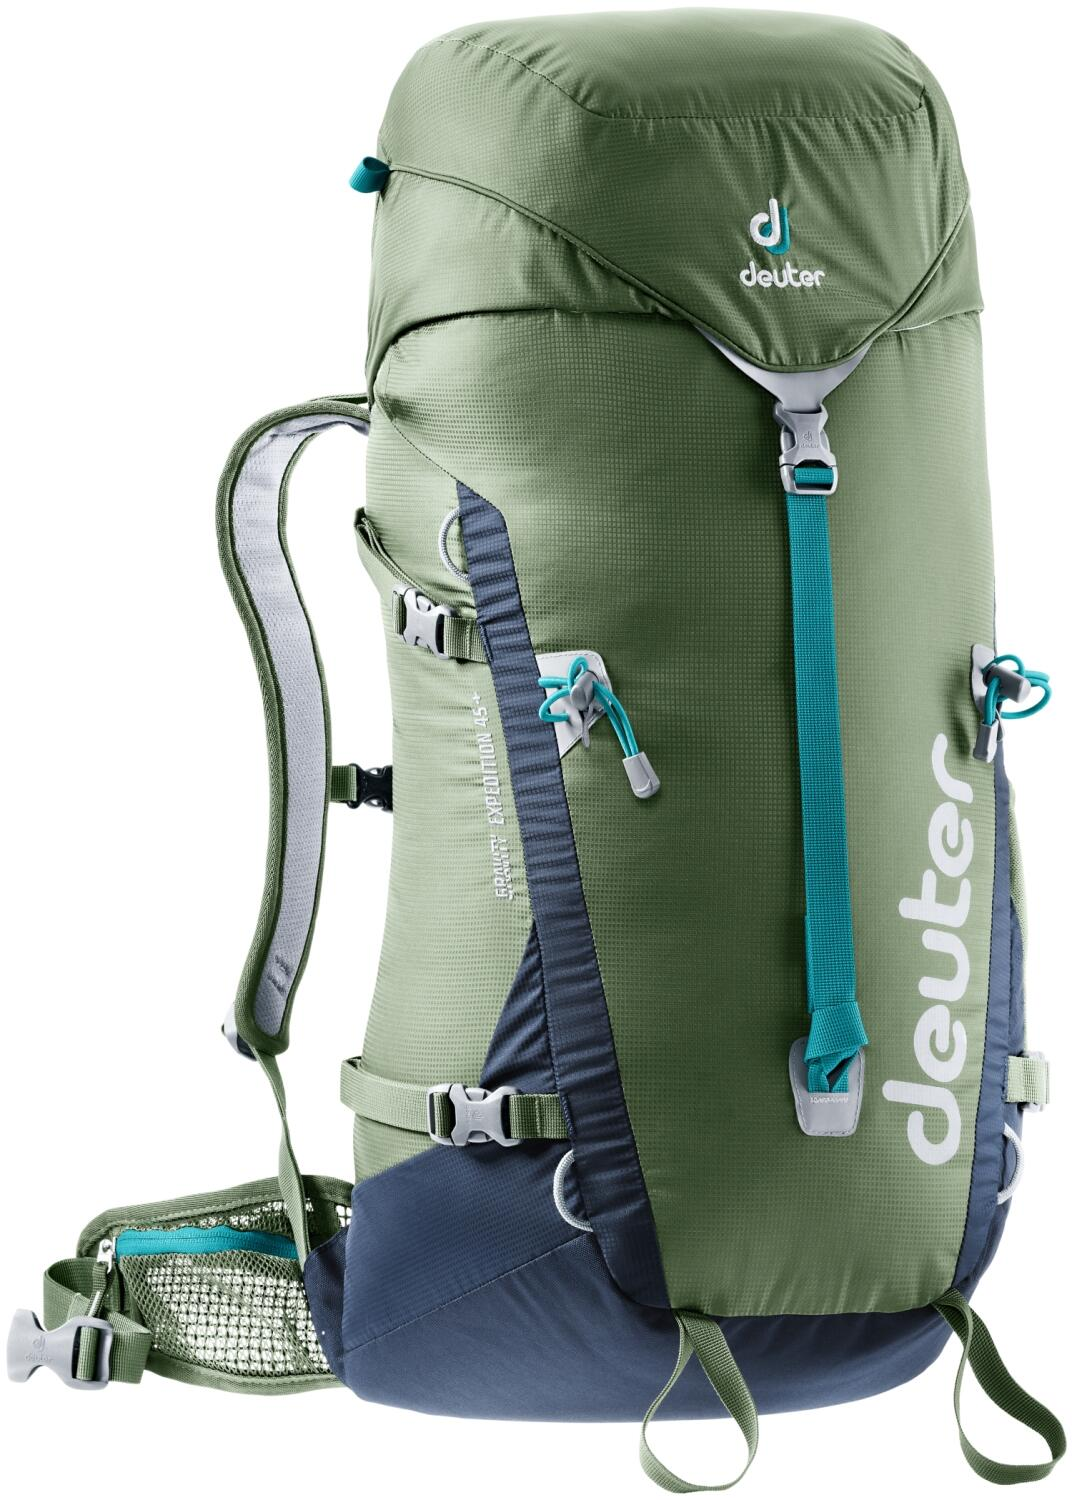 Deuter Gravity Expedition 45 Rucksack (Farbe: 2325 khaki/navy)